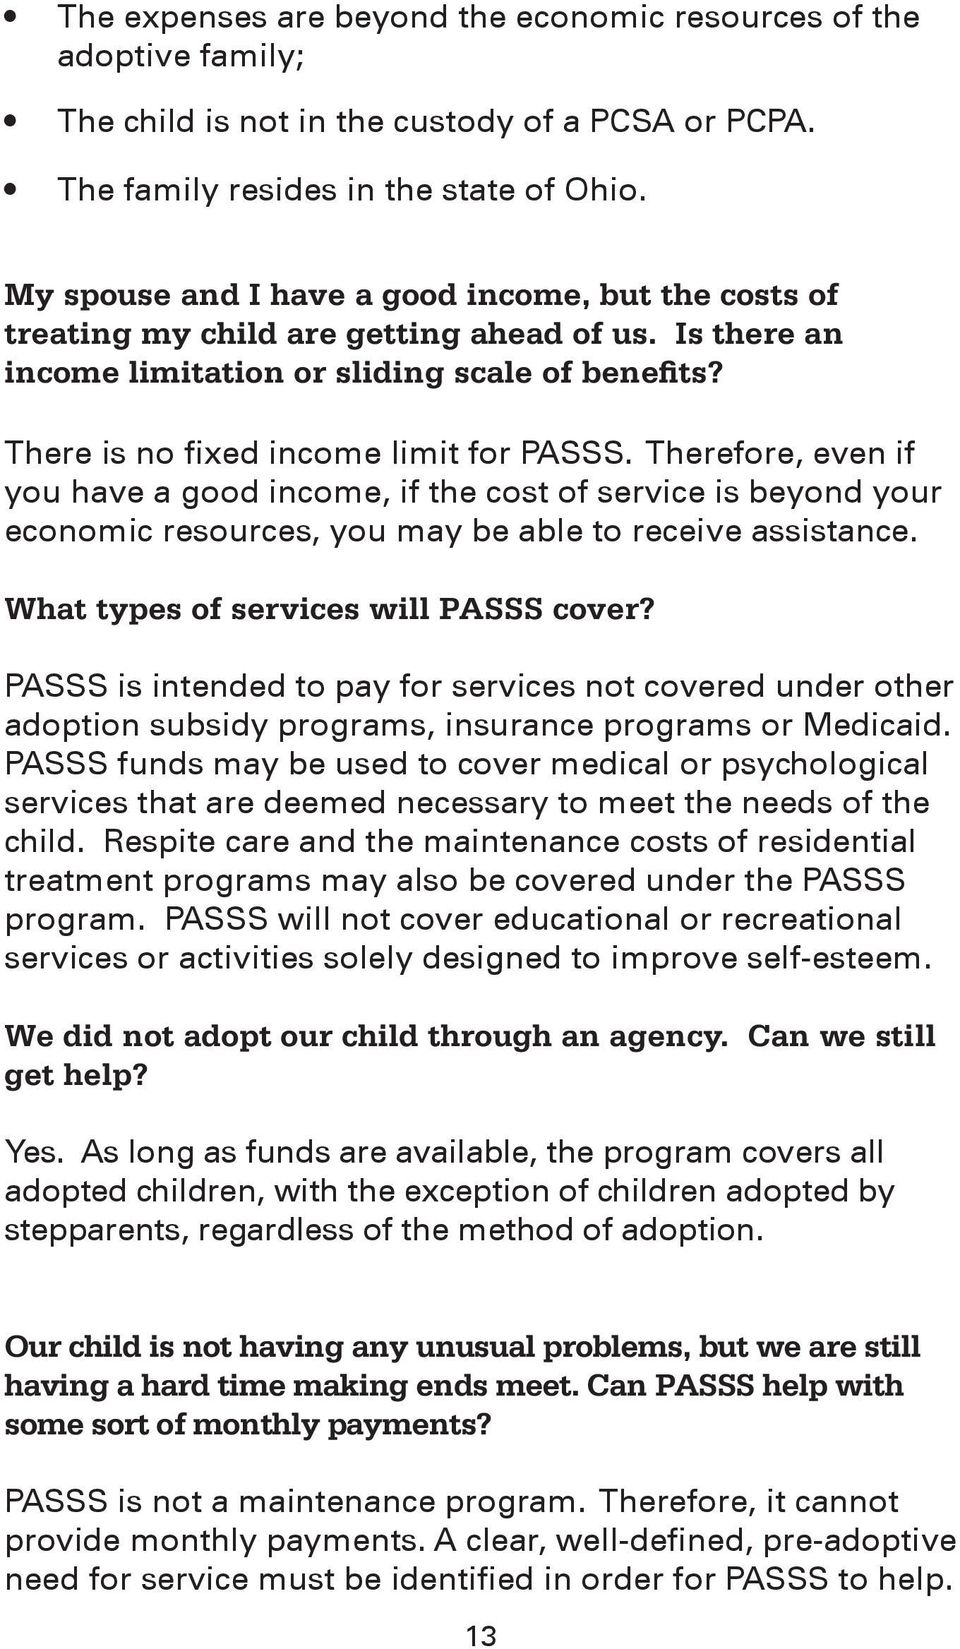 Therefore, even if you have a good income, if the cost of service is beyond your economic resources, you may be able to receive assistance. What types of services will PASSS cover?